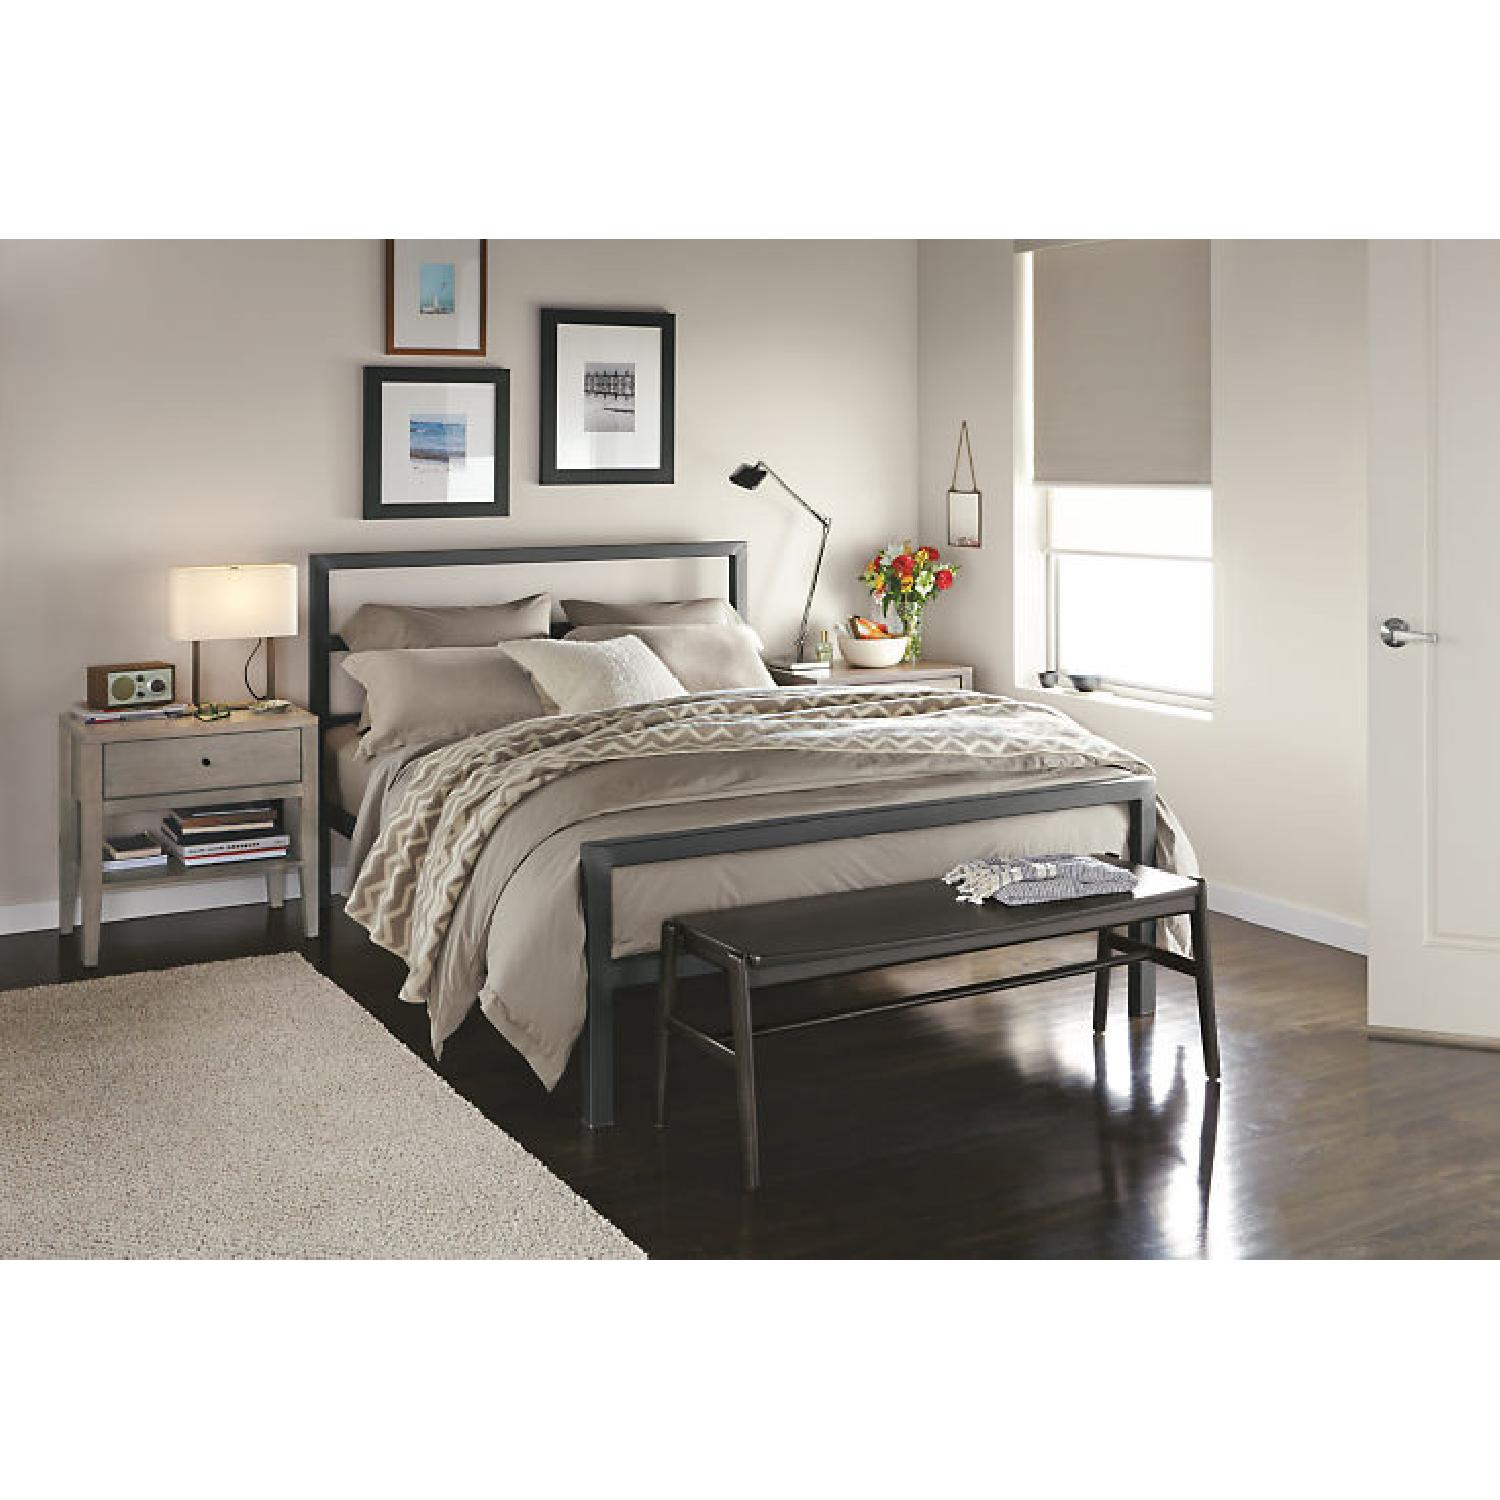 Room & Board Parsons Queen Sized Bed in Natural Steel - image-2